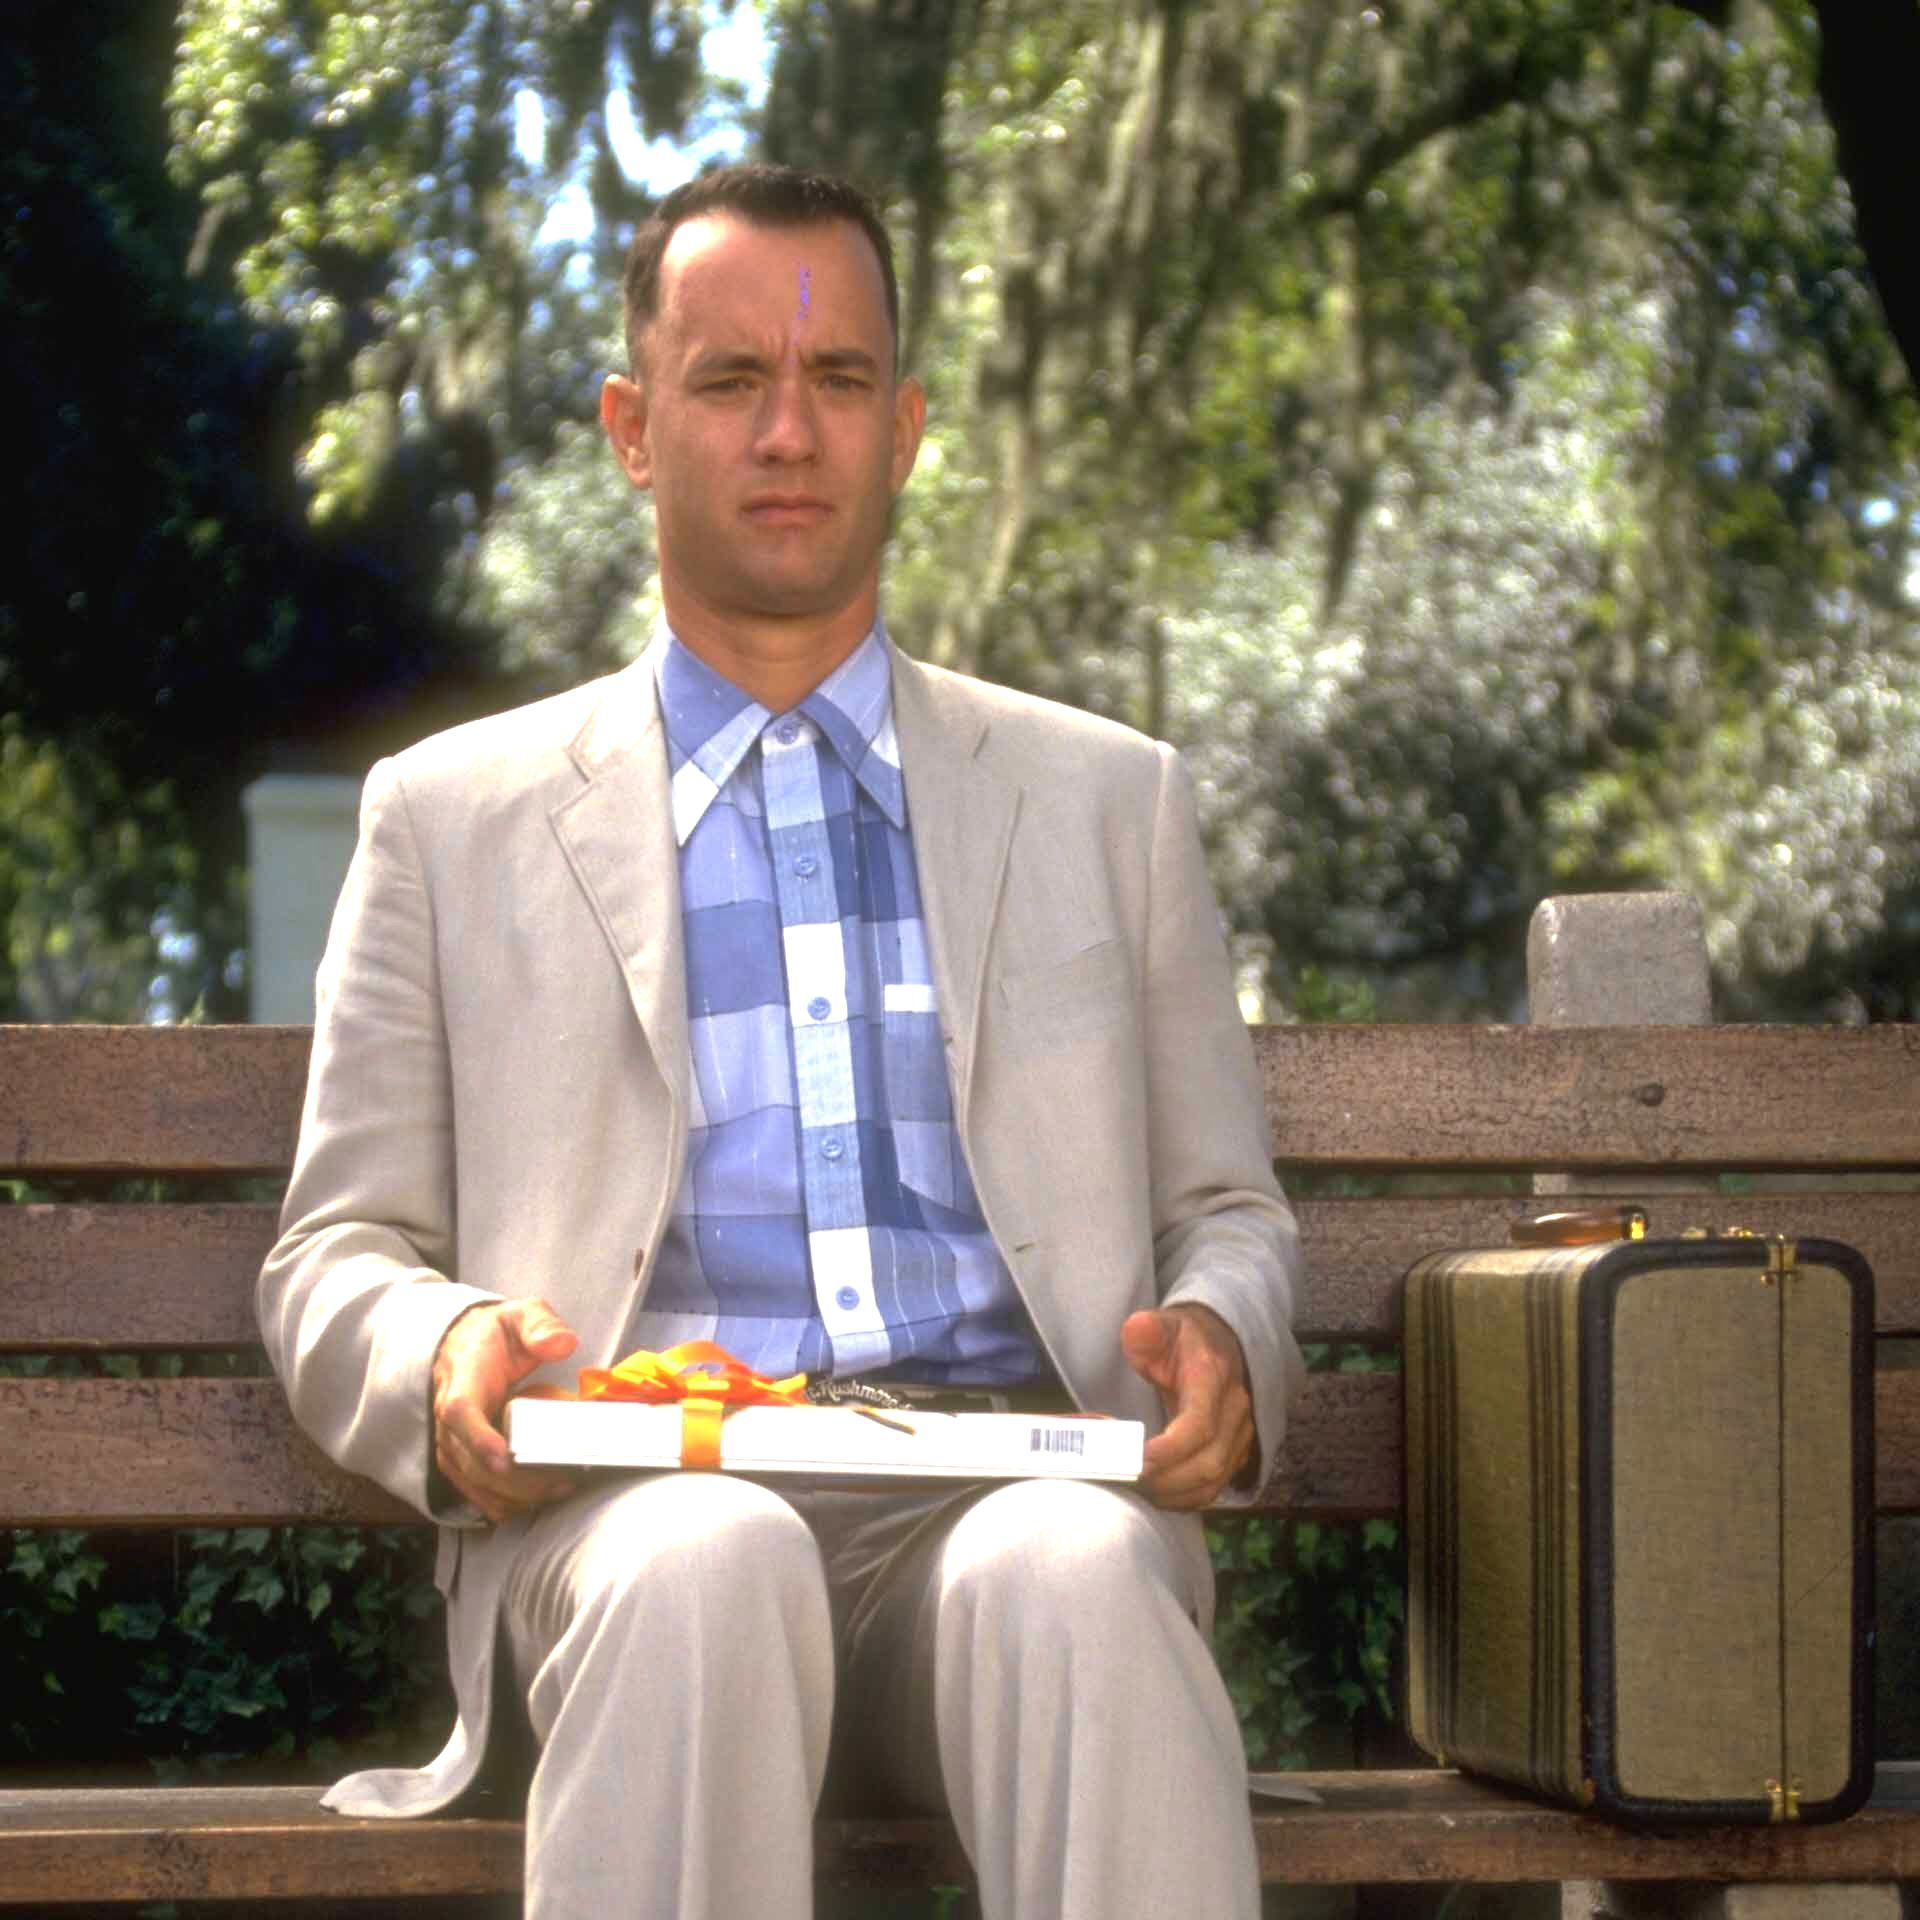 Tom Hanks' Oscar-winning Forrest Gump is getting a remake